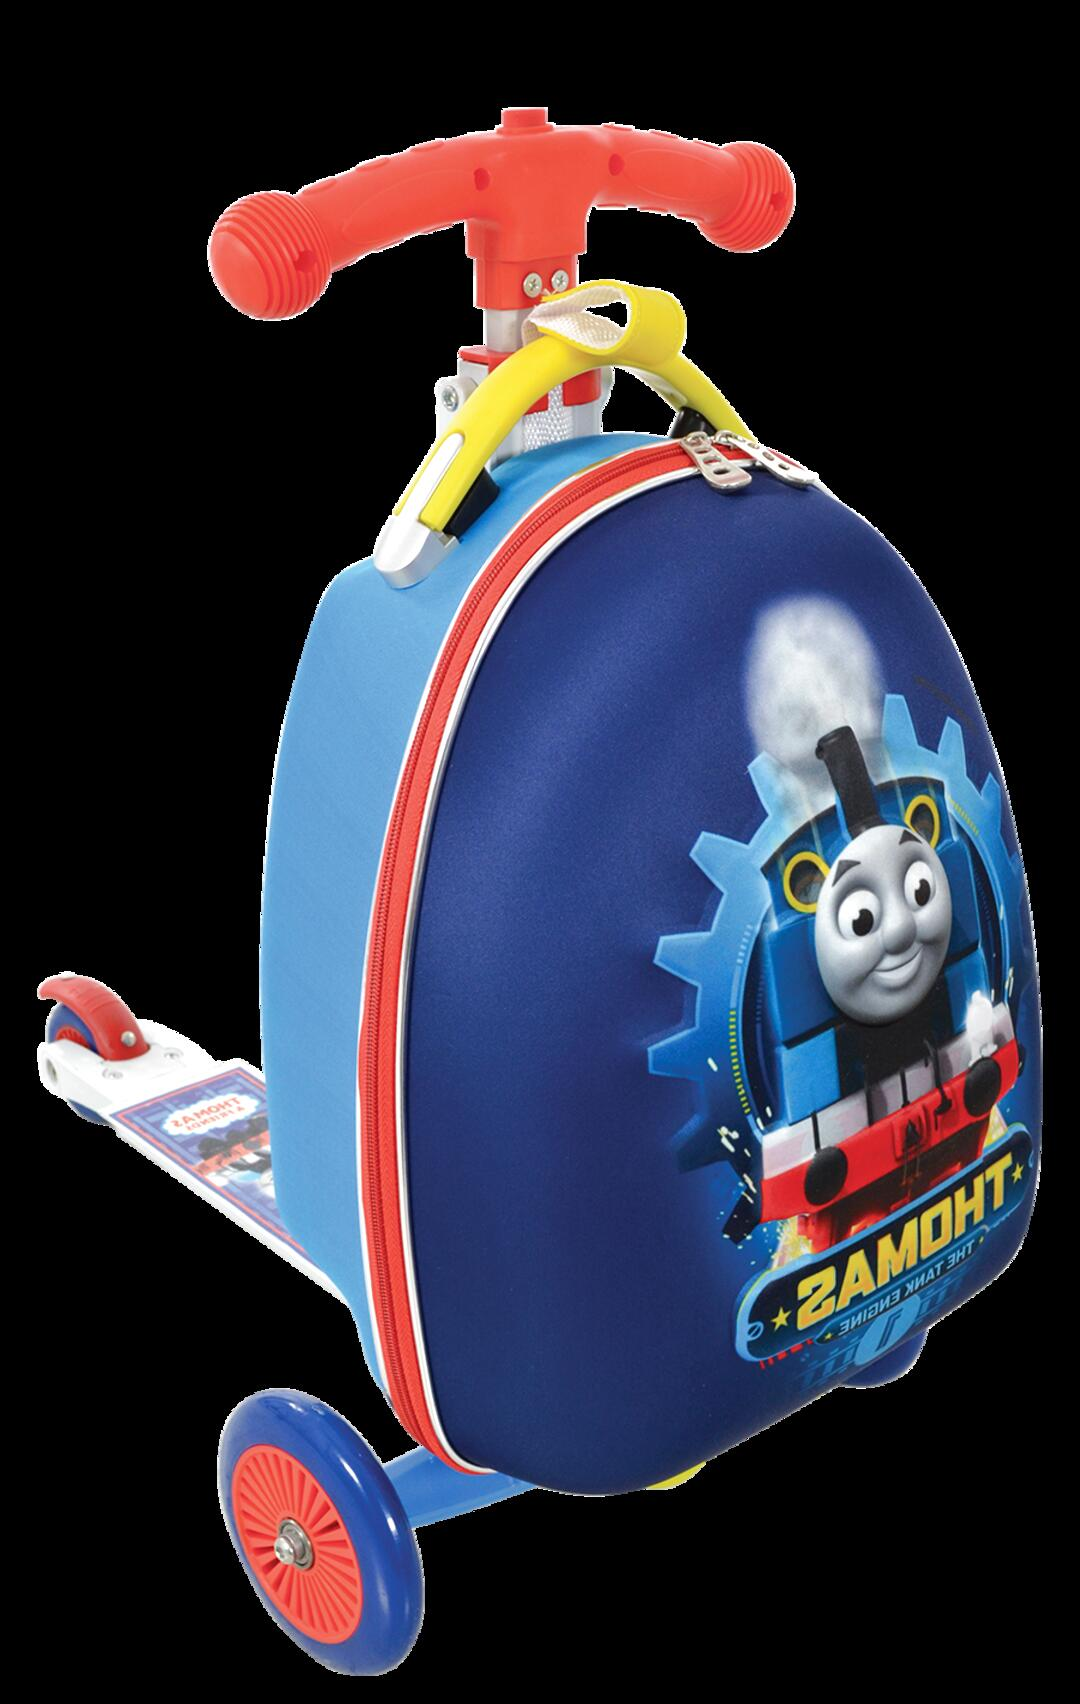 Personalised Backpack and Umbrella Set Thomas the Tank Engine New with Tags